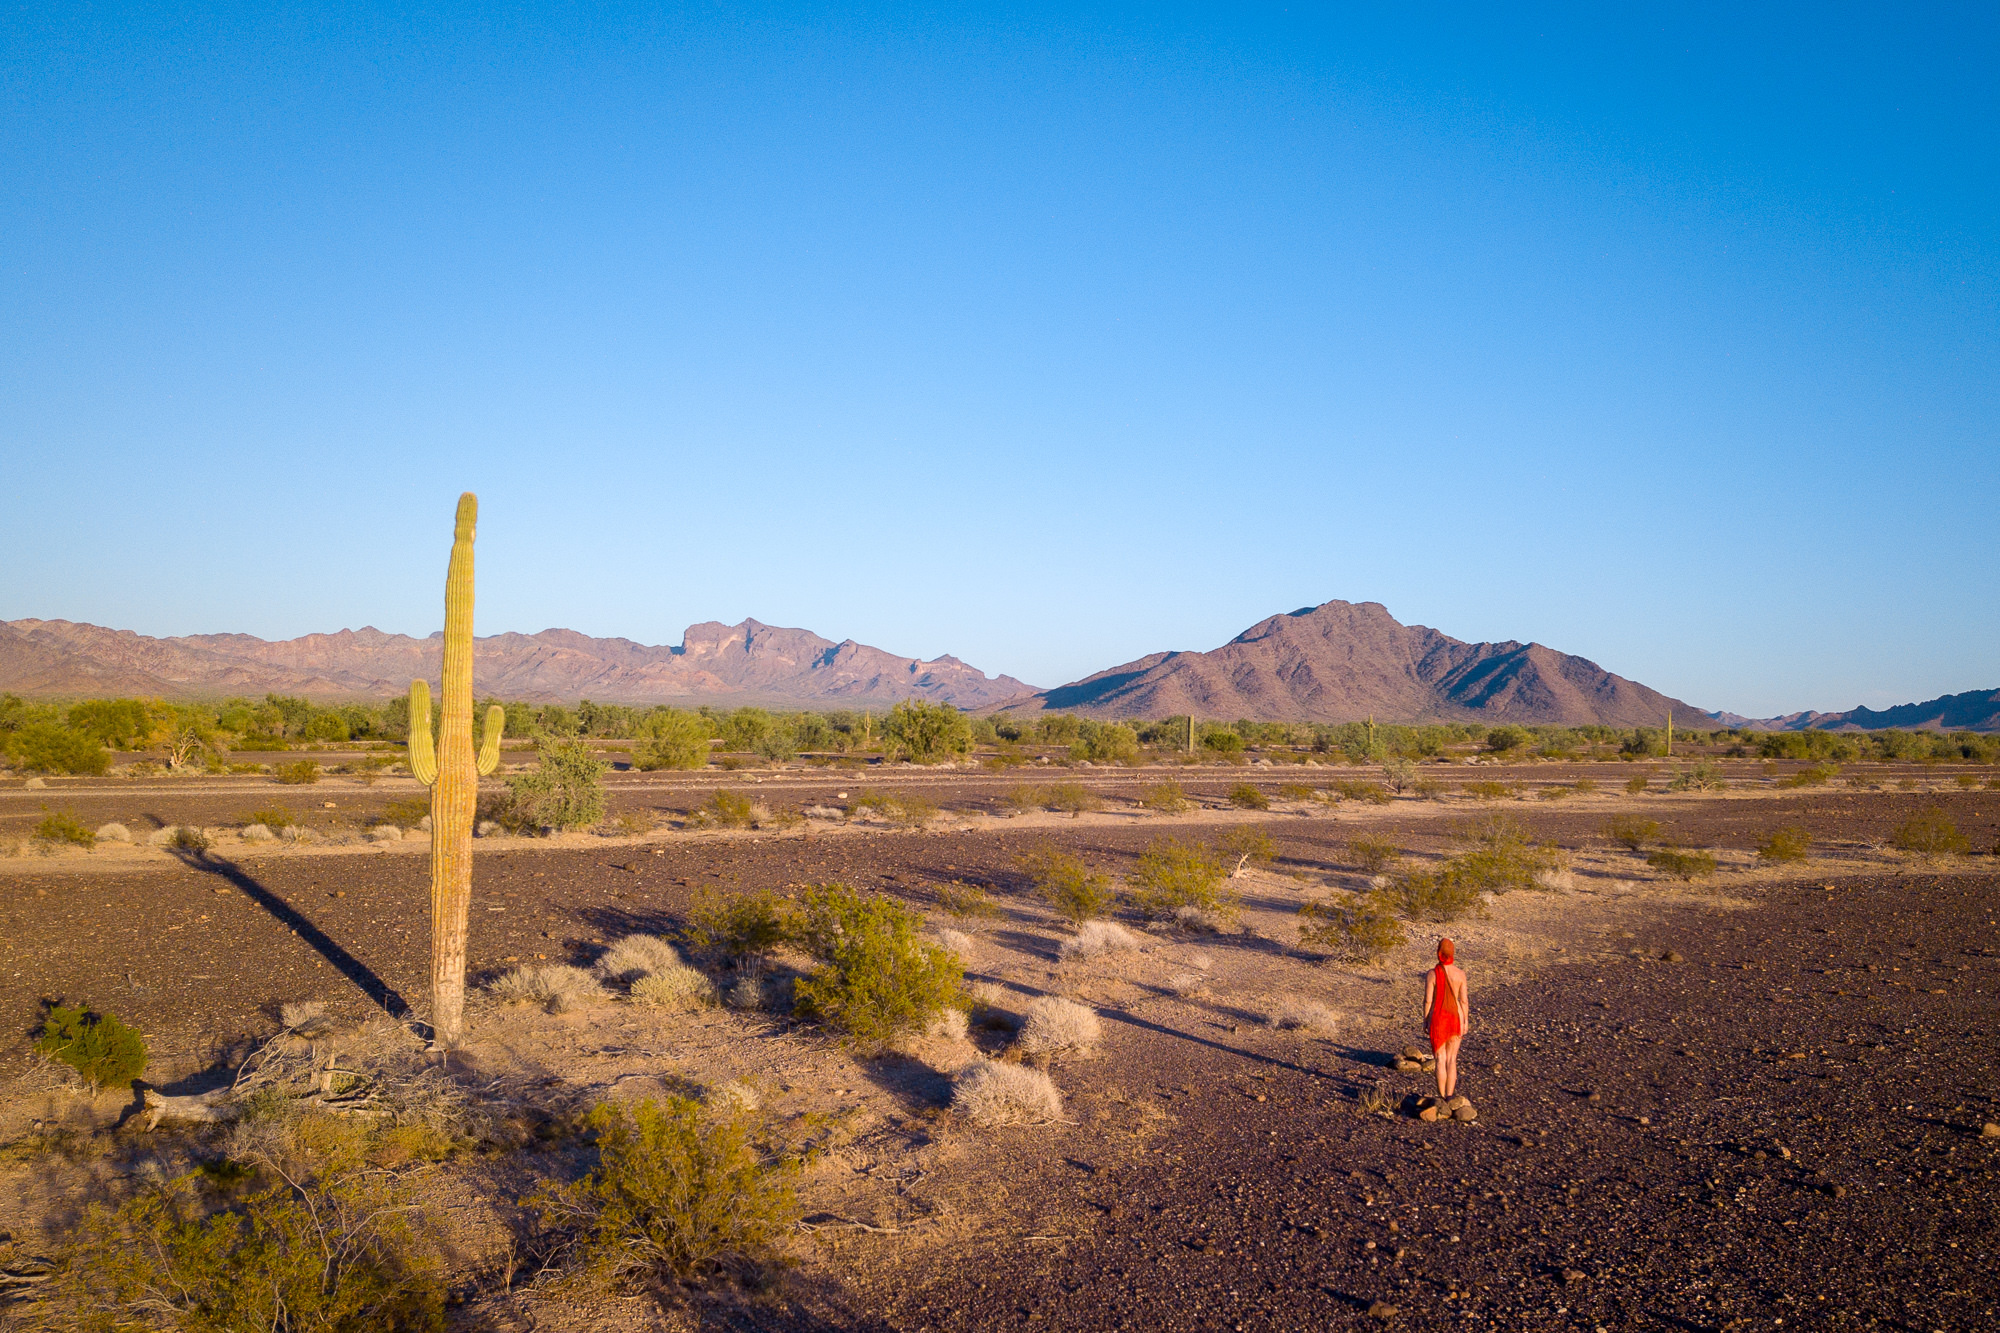 photo: I AM: Discussing age at sunset with a saguaro